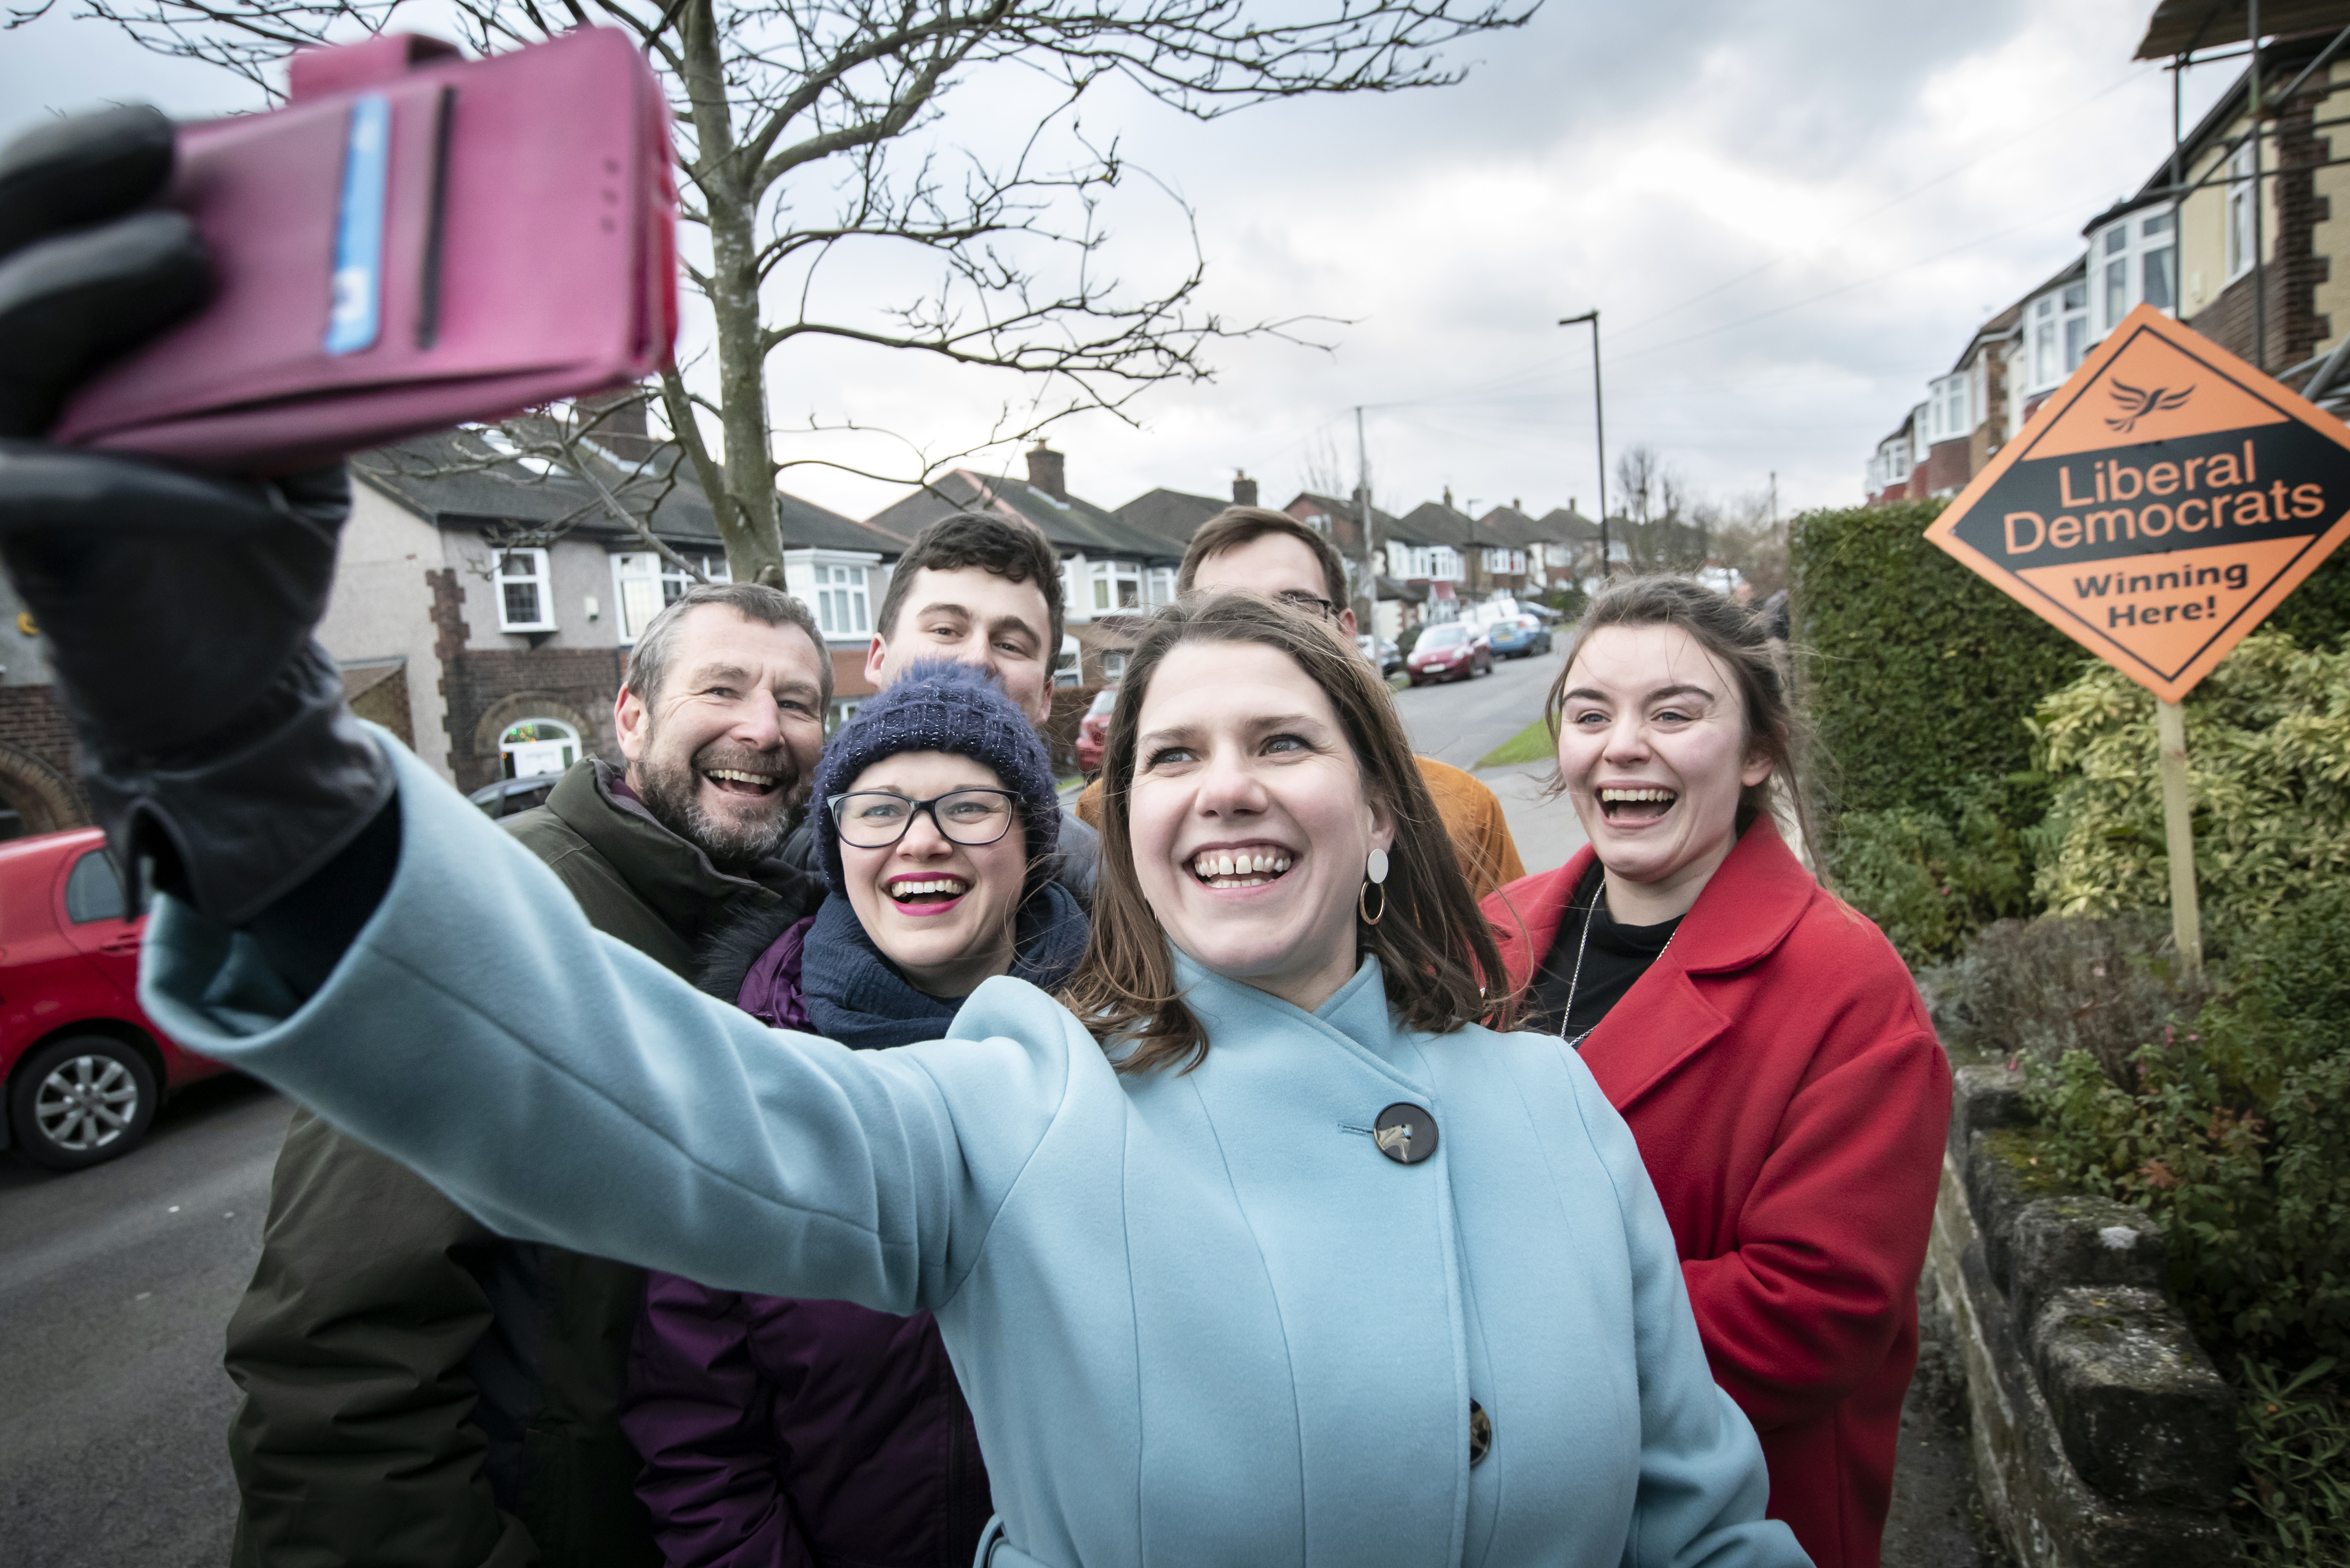 Liberal Democrat Leader Jo Swinson canvassing door to door with activists during a visit to Sheffield, while on the General Election campaign trail.